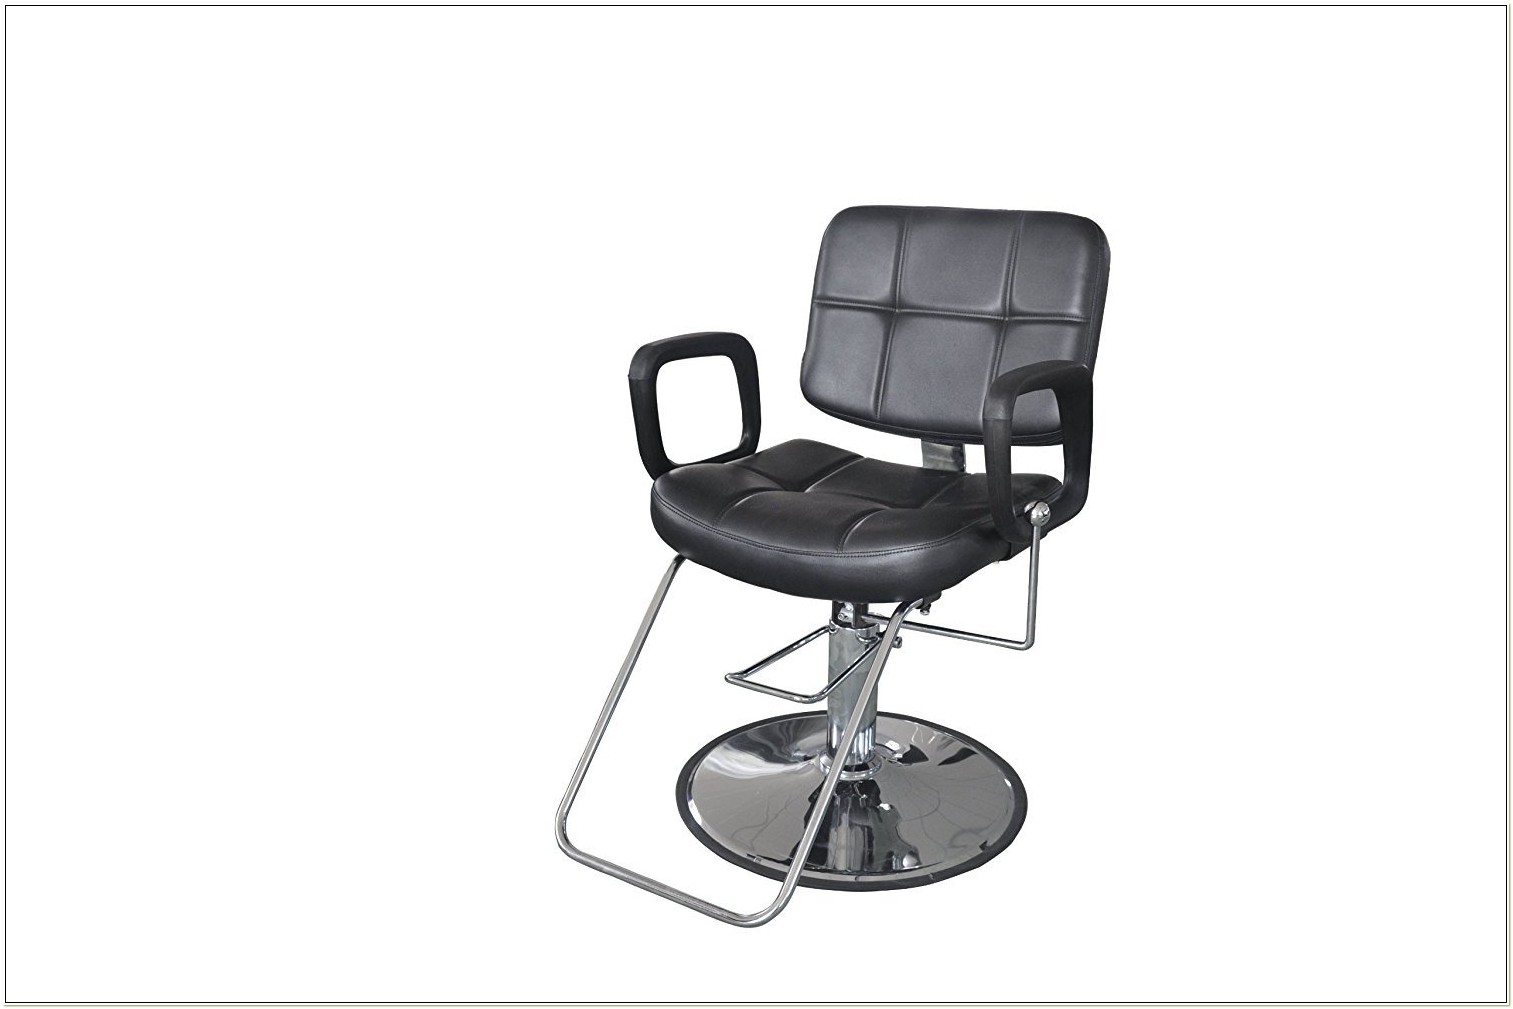 Exacme Reclining Hydraulic Barber Chair